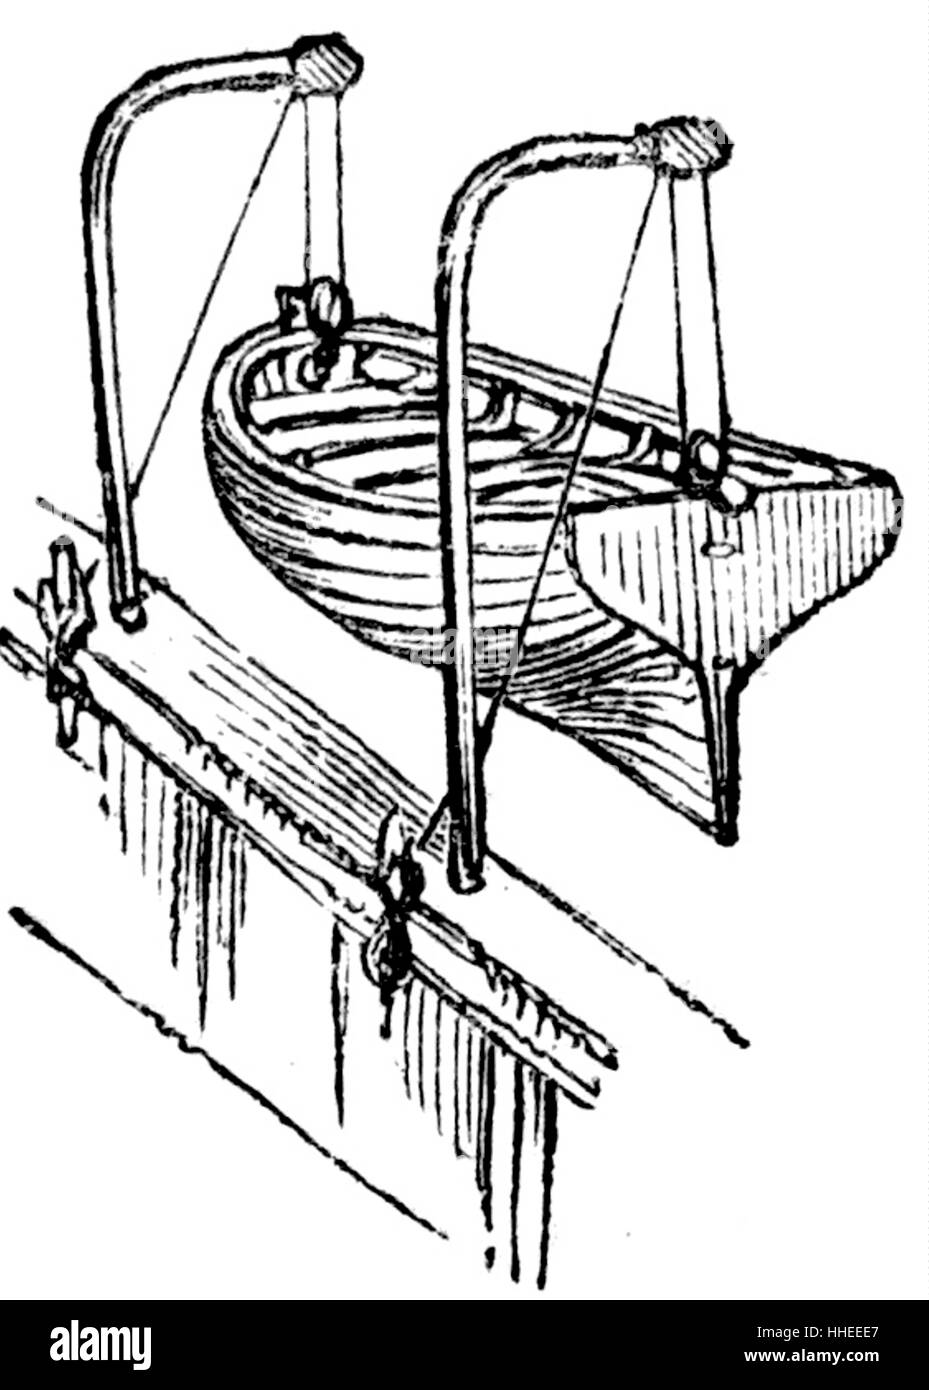 Engraving Of A Lifeboat Dated 19th Century Stock Photo 131240431